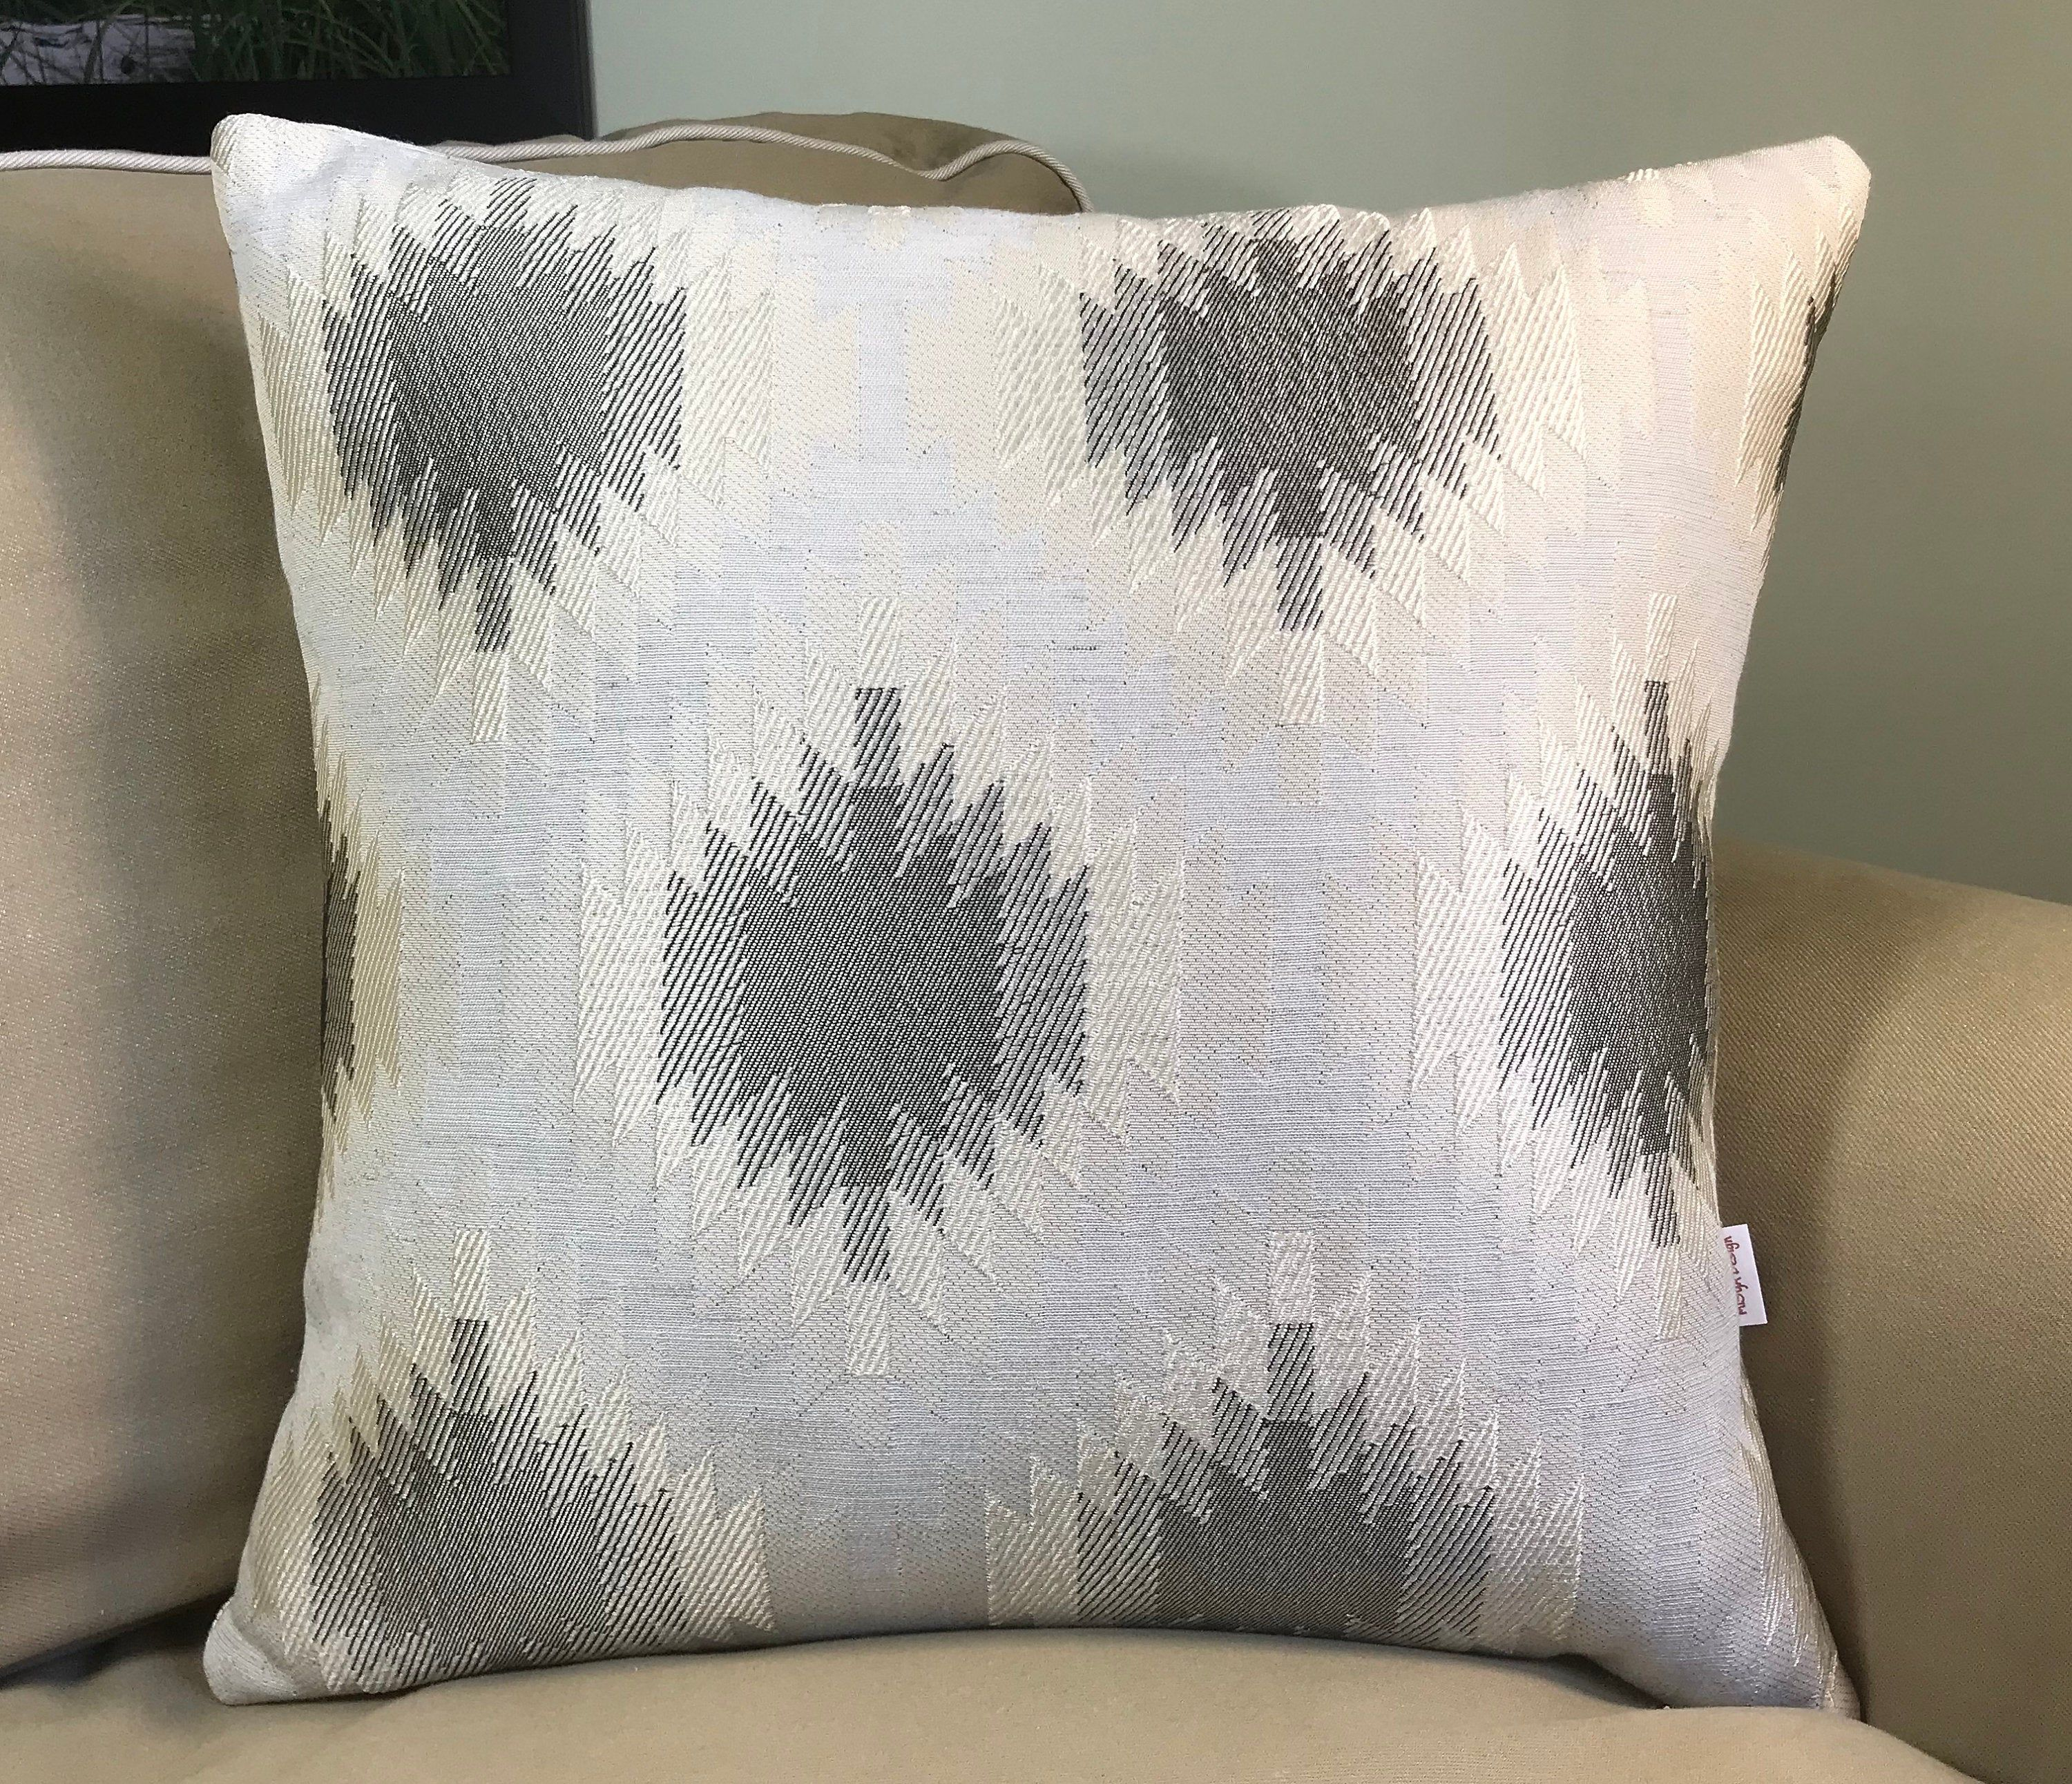 Beige And Grey Double Sided Decorative Pillows Square Decorative Pillow Cover Home Decor Square Pillow Cover Decorative Pillows Decorative Pillow Covers